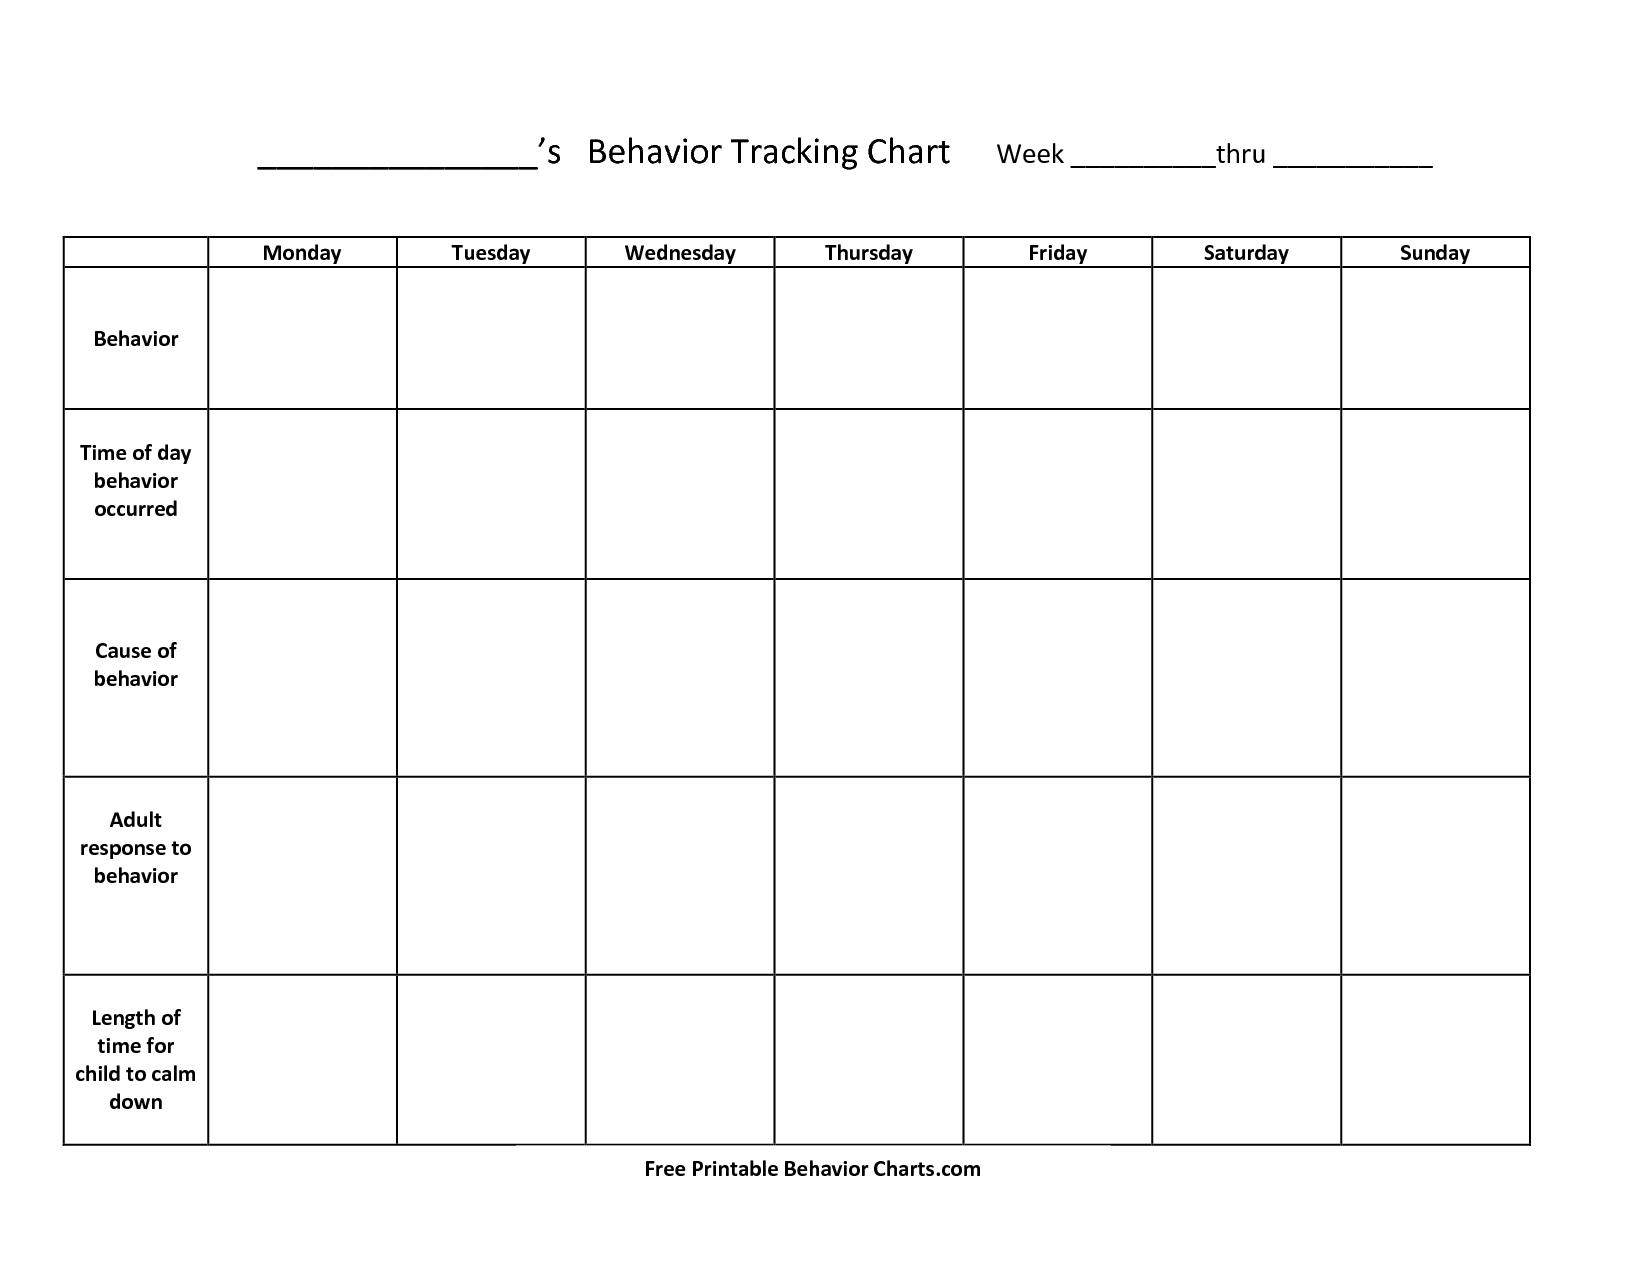 Free Printable Behavior Chart Templates